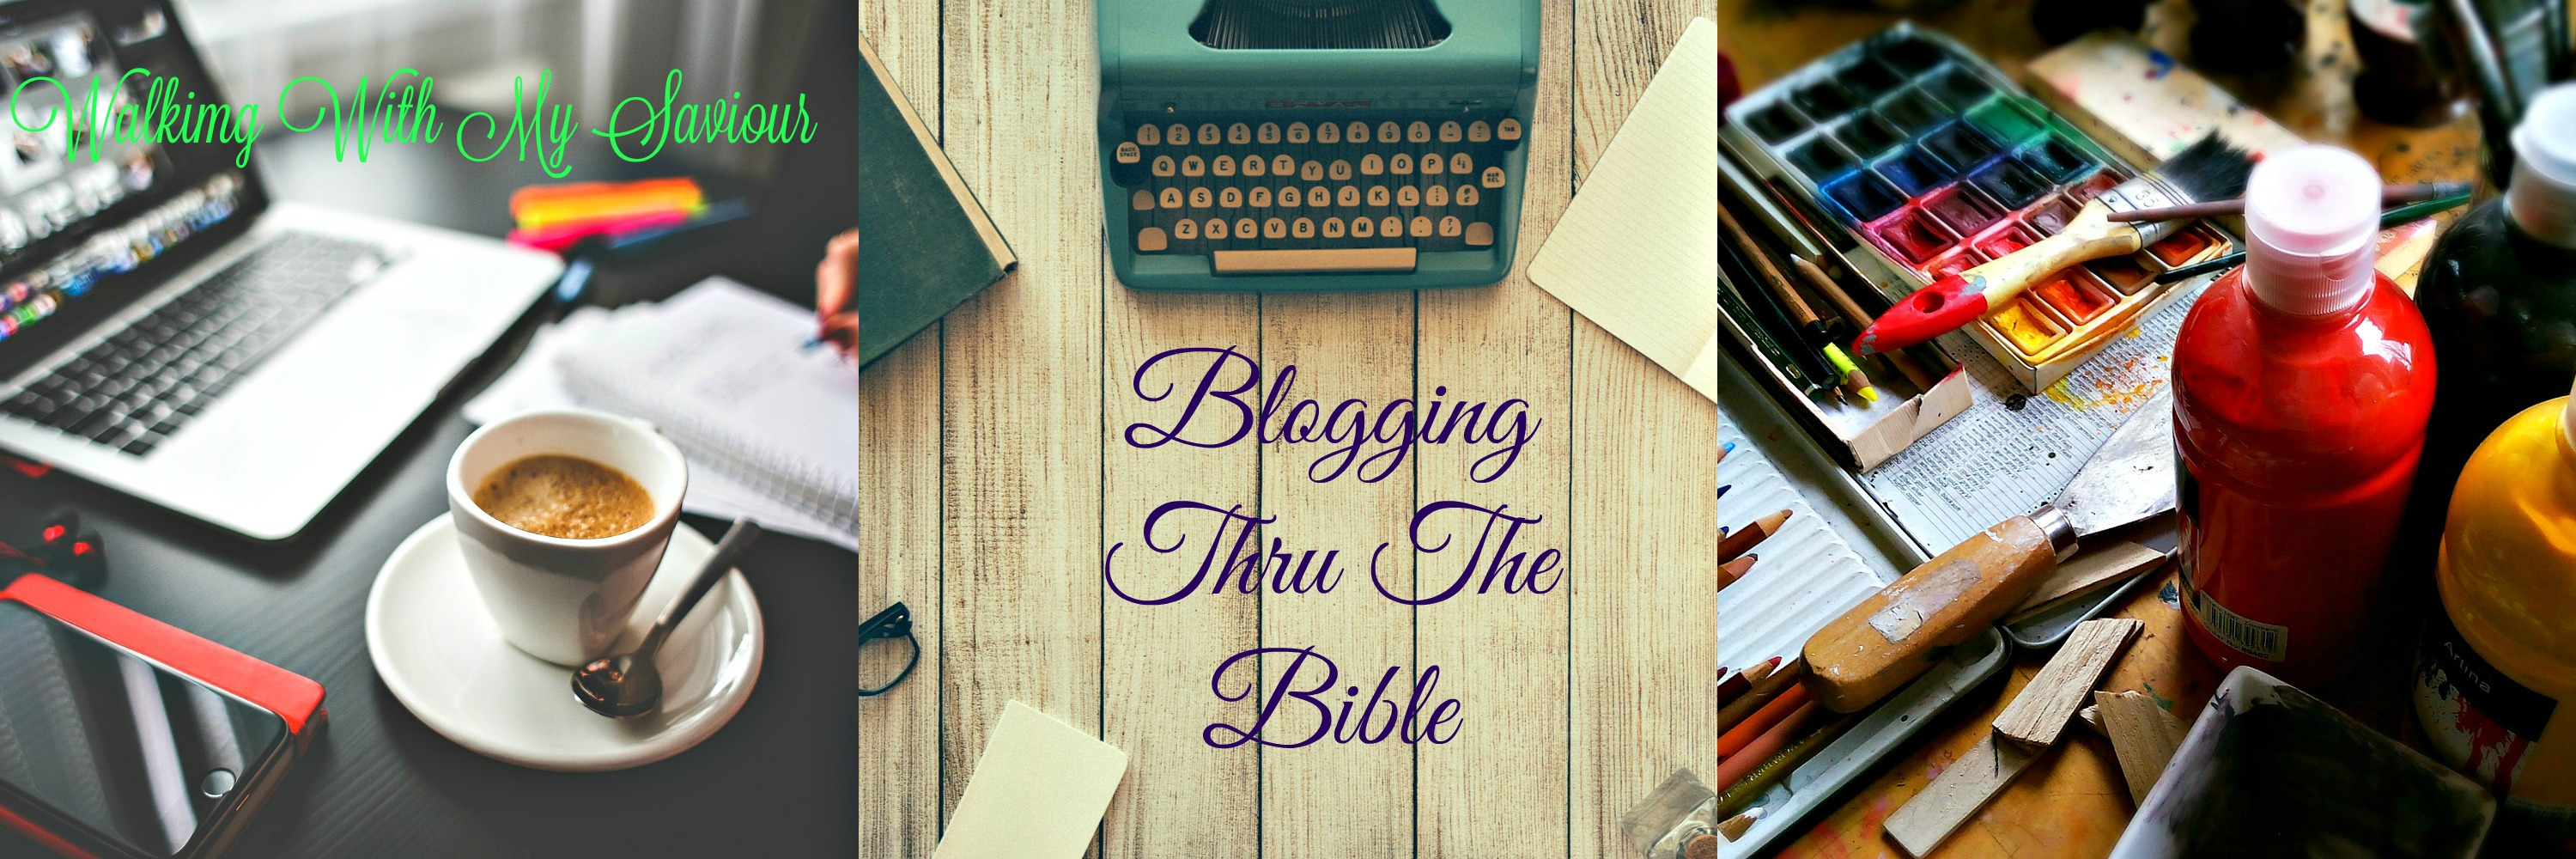 BLOGGING THRU THE BIBLE: It's Time to Begin! {Intro and Resources for Romans 1-5}